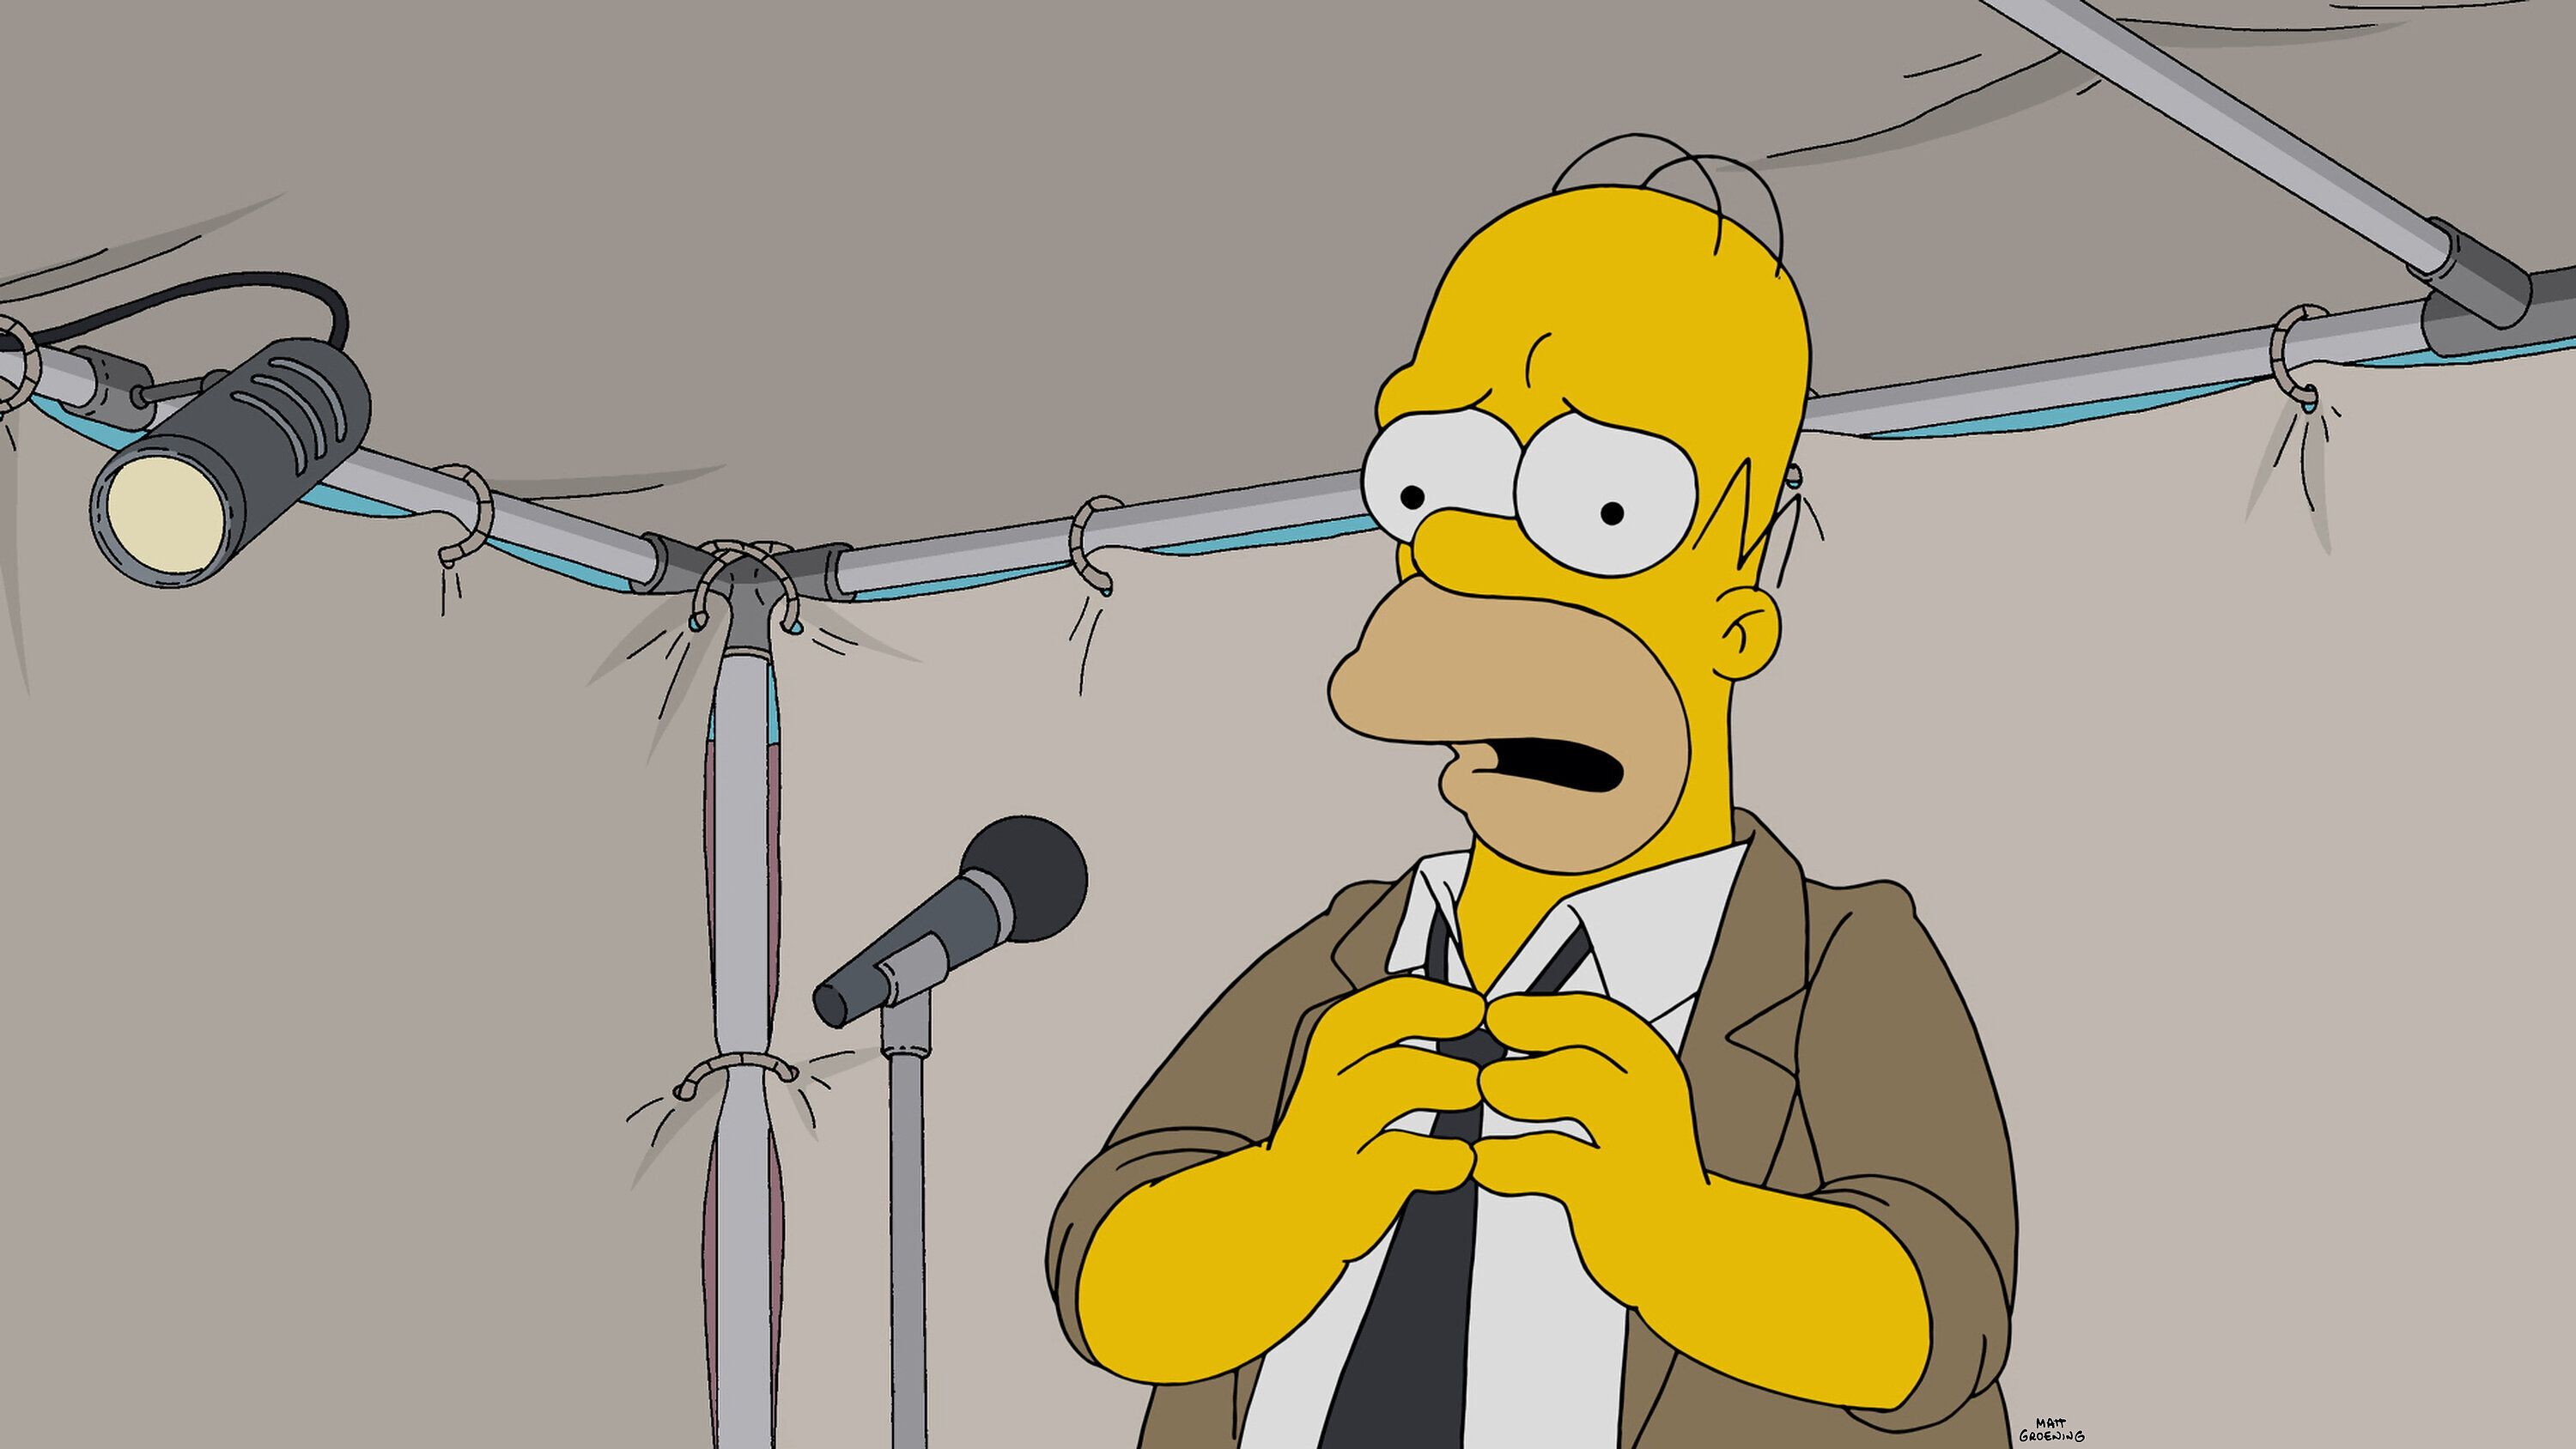 THE SIMPSONS:  Homer turns to improv comedy to gain back his confidence in the Simprovised episode of THE SIMPSONS airing Sunday, May 15 (8:00-8:30 PM ET/PT) on FOX.  (Photo by FOX via Getty Images)